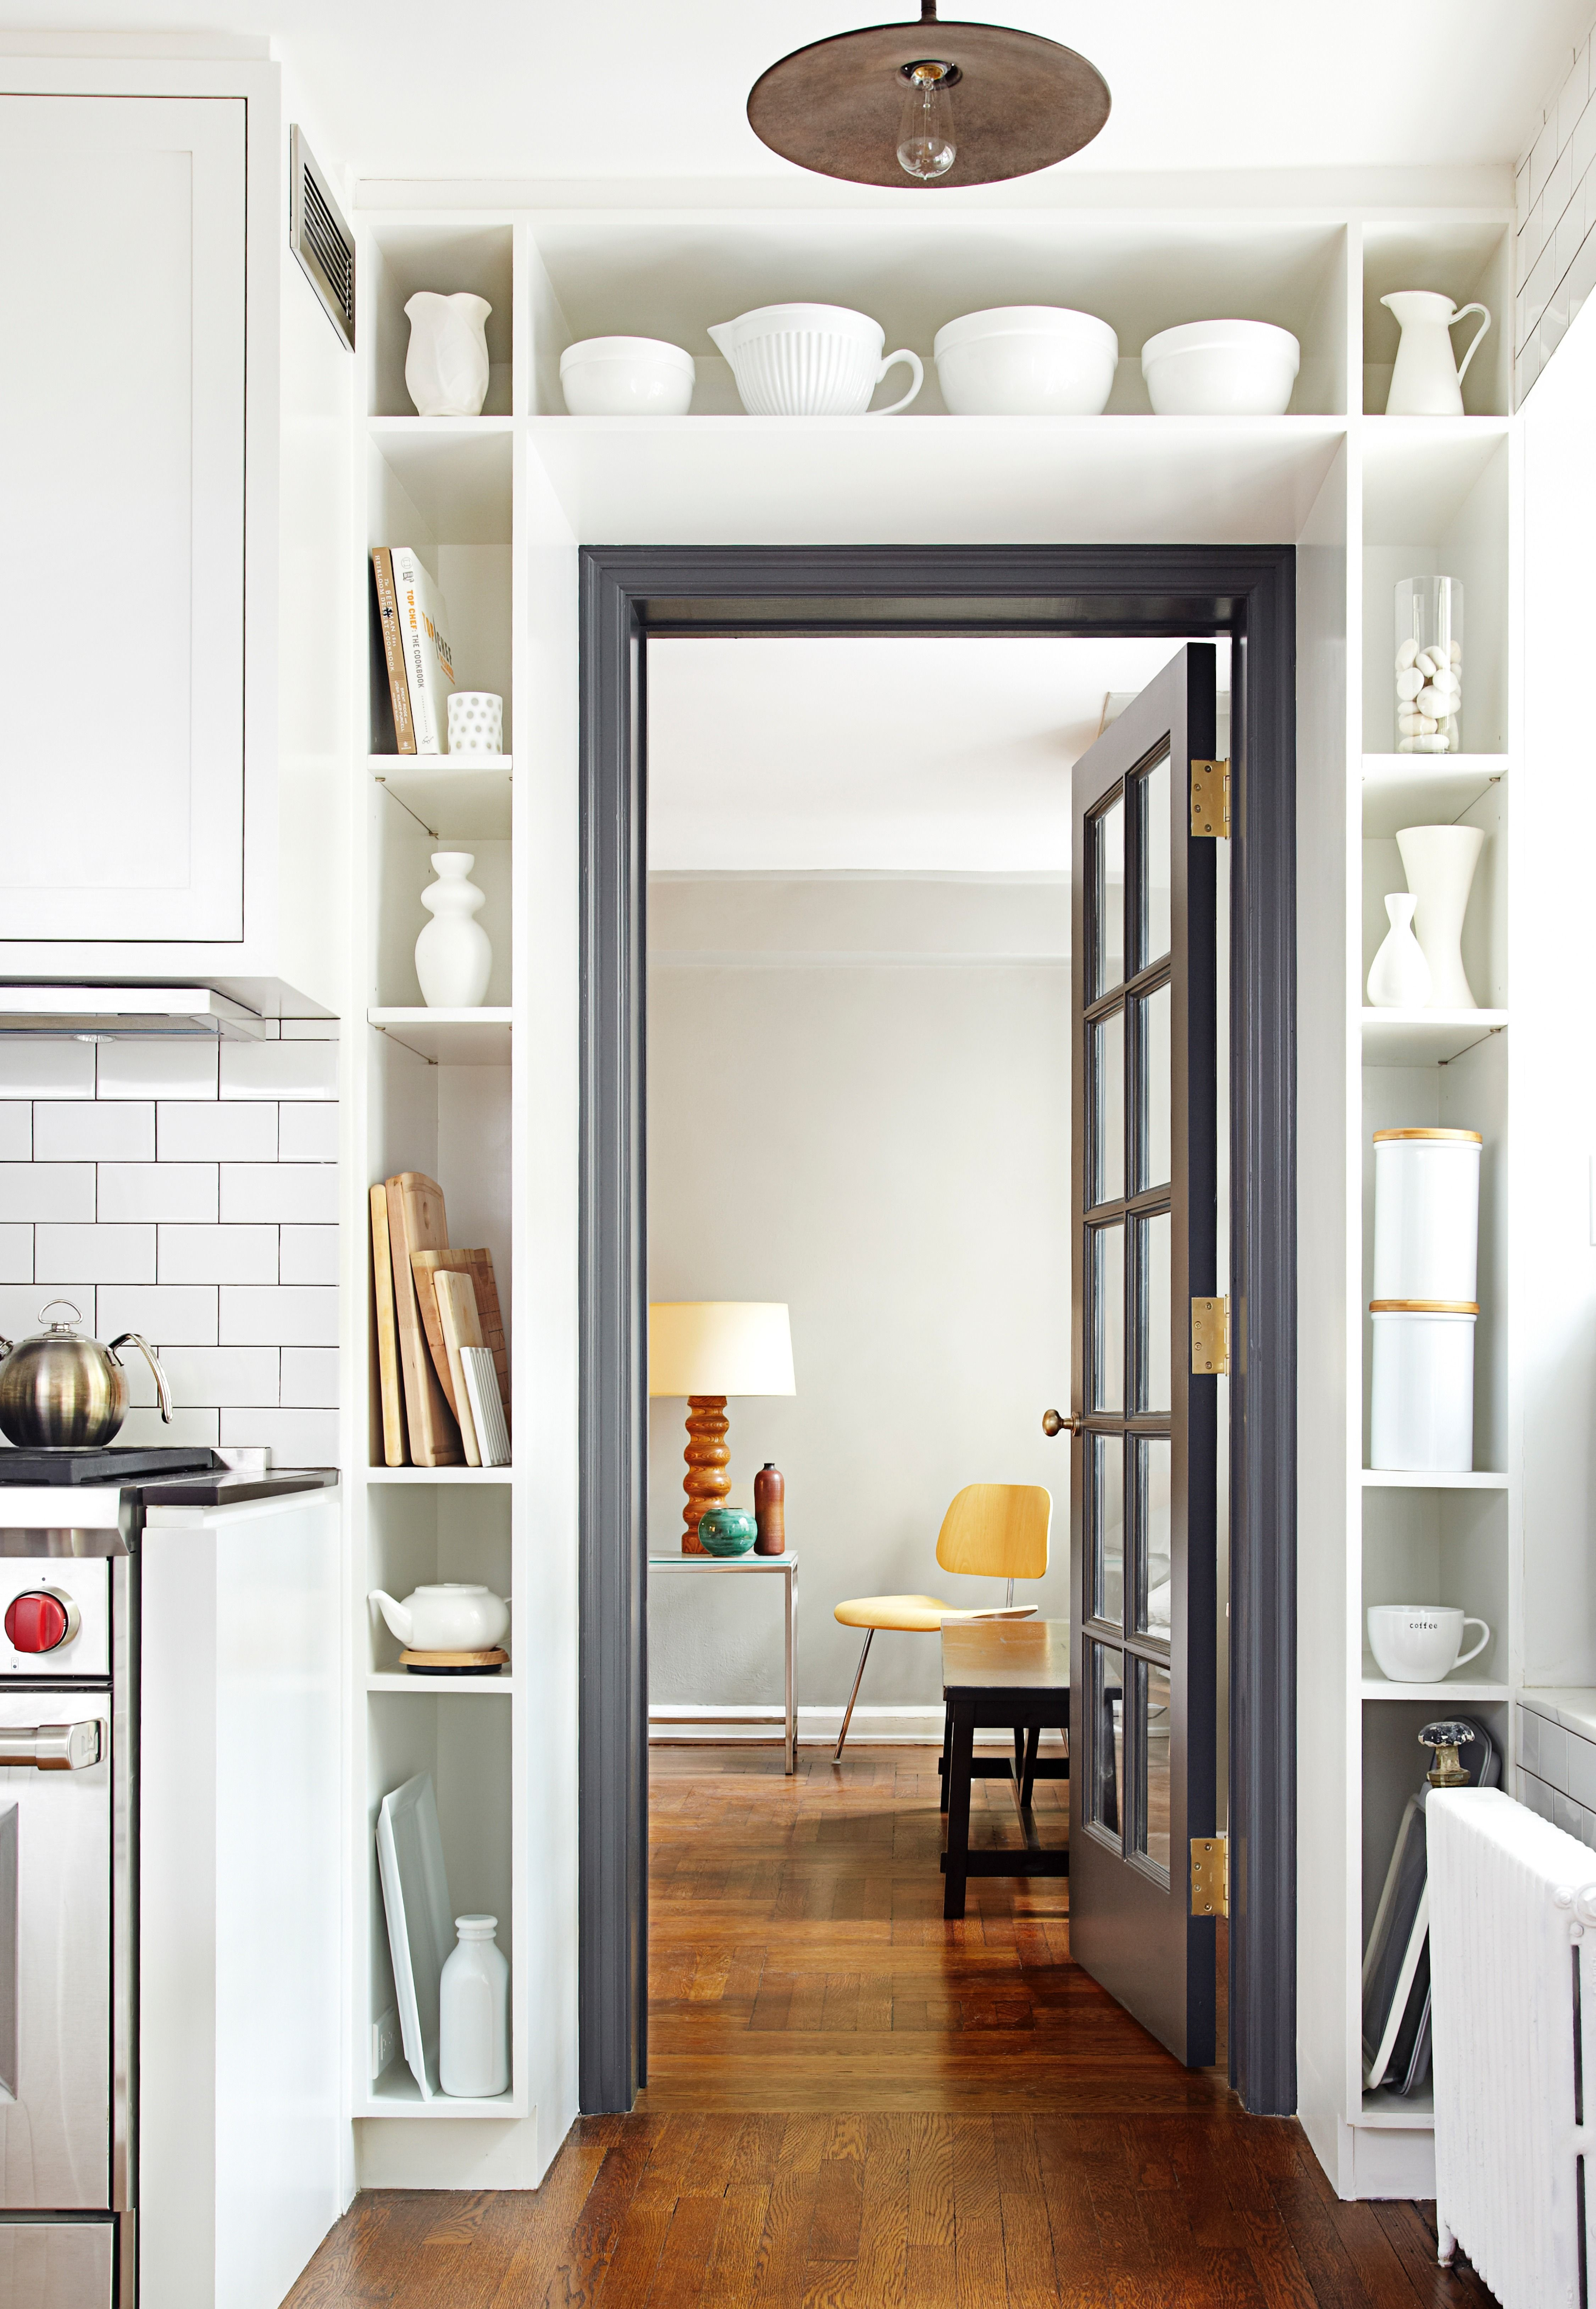 All Remodelista Home Inspiration Stories in One Place | Pinterest